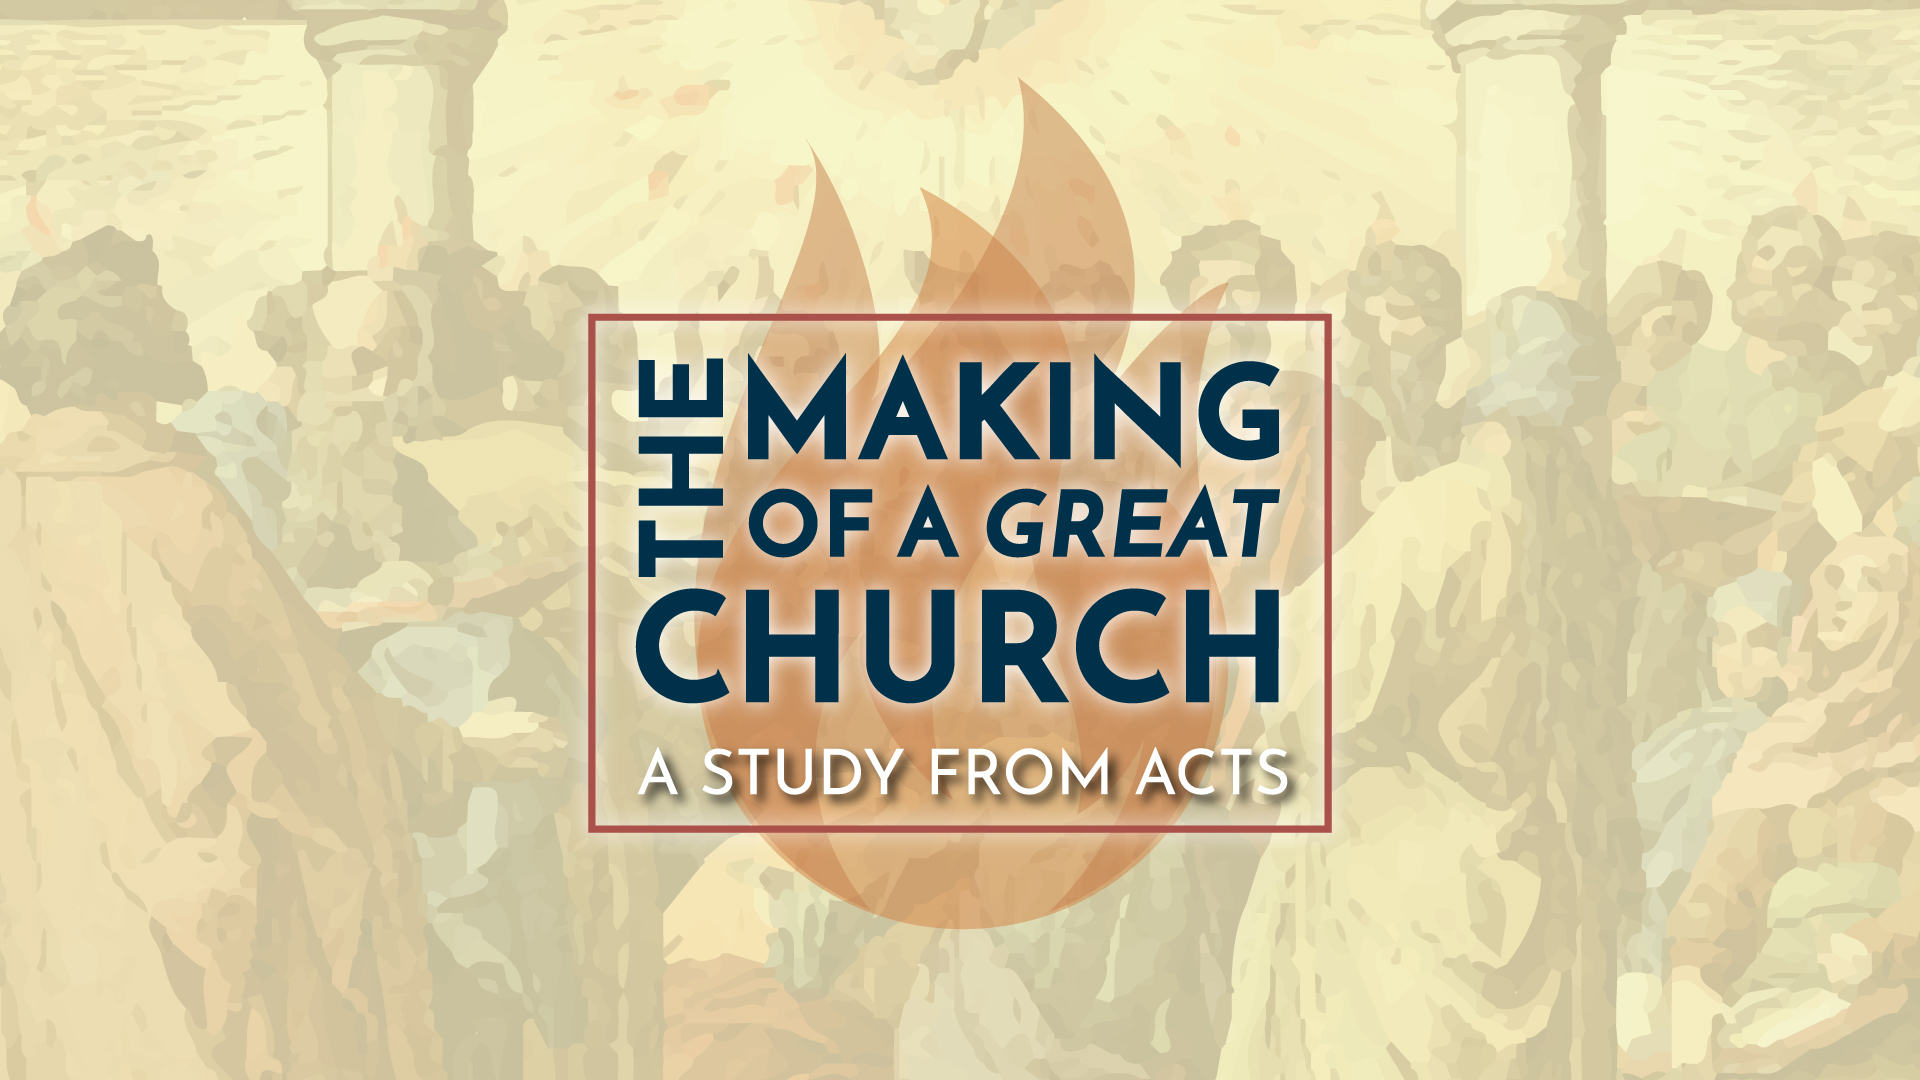 The Making of a Great Church